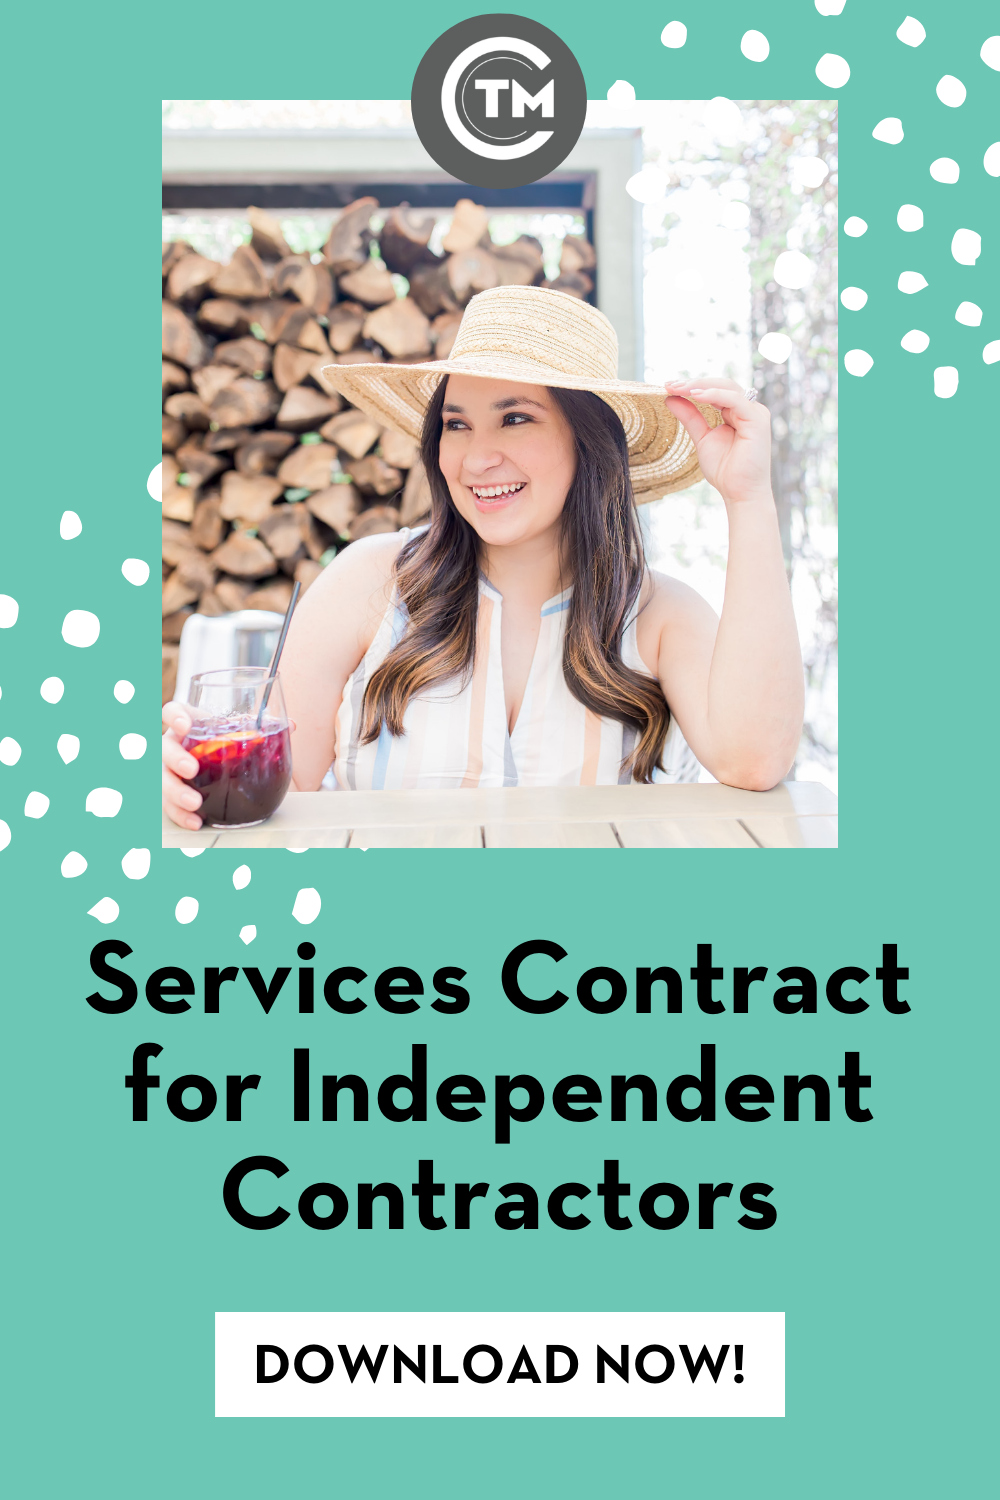 Services Contract Template For Independent Contractors This